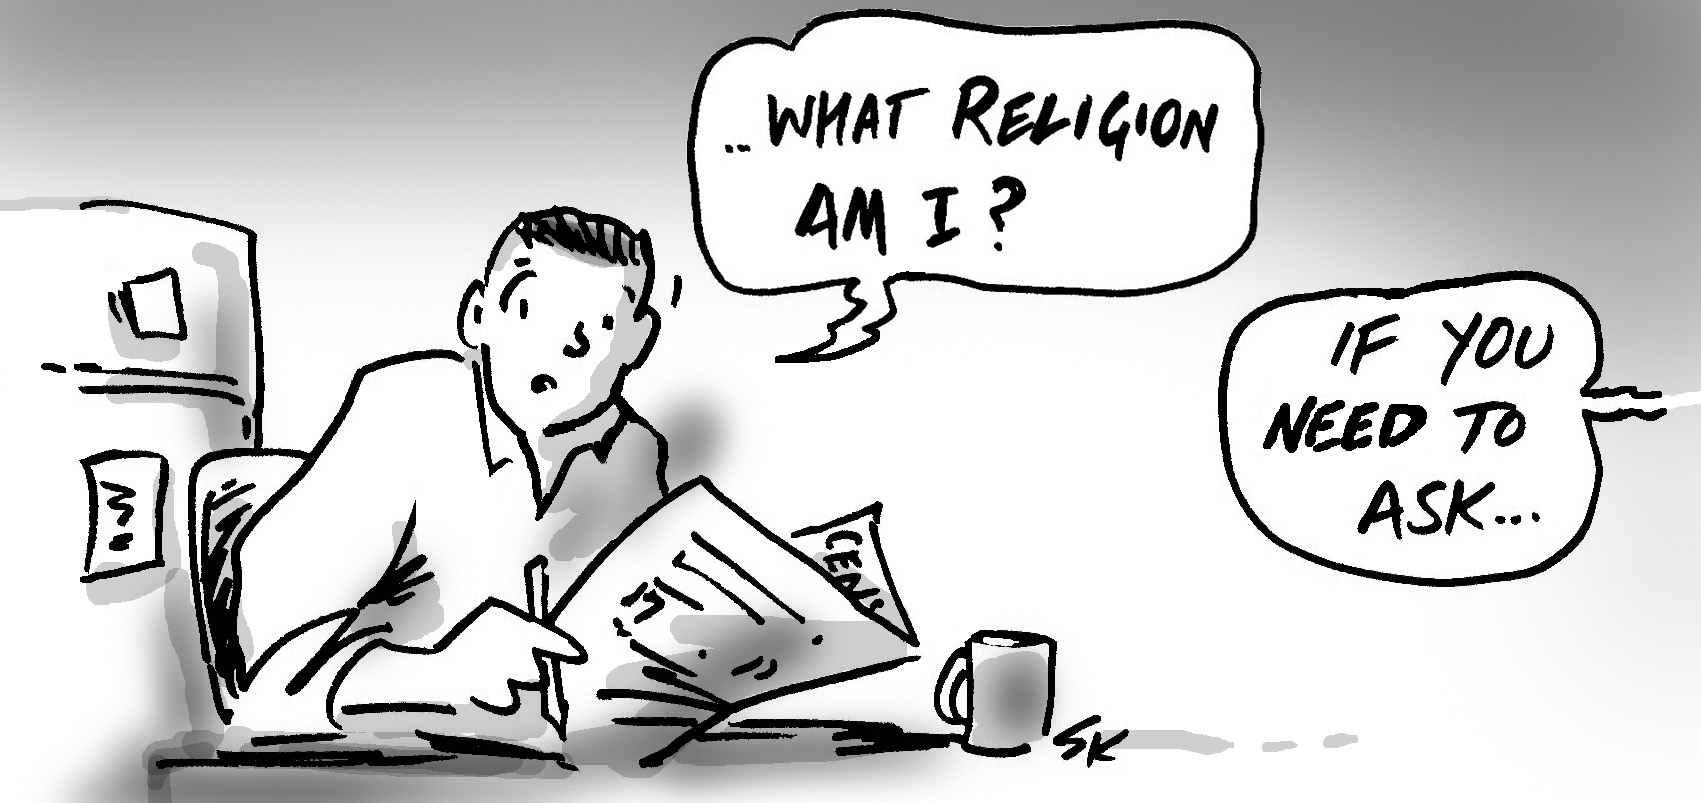 How no religion became the most common religion in Australia